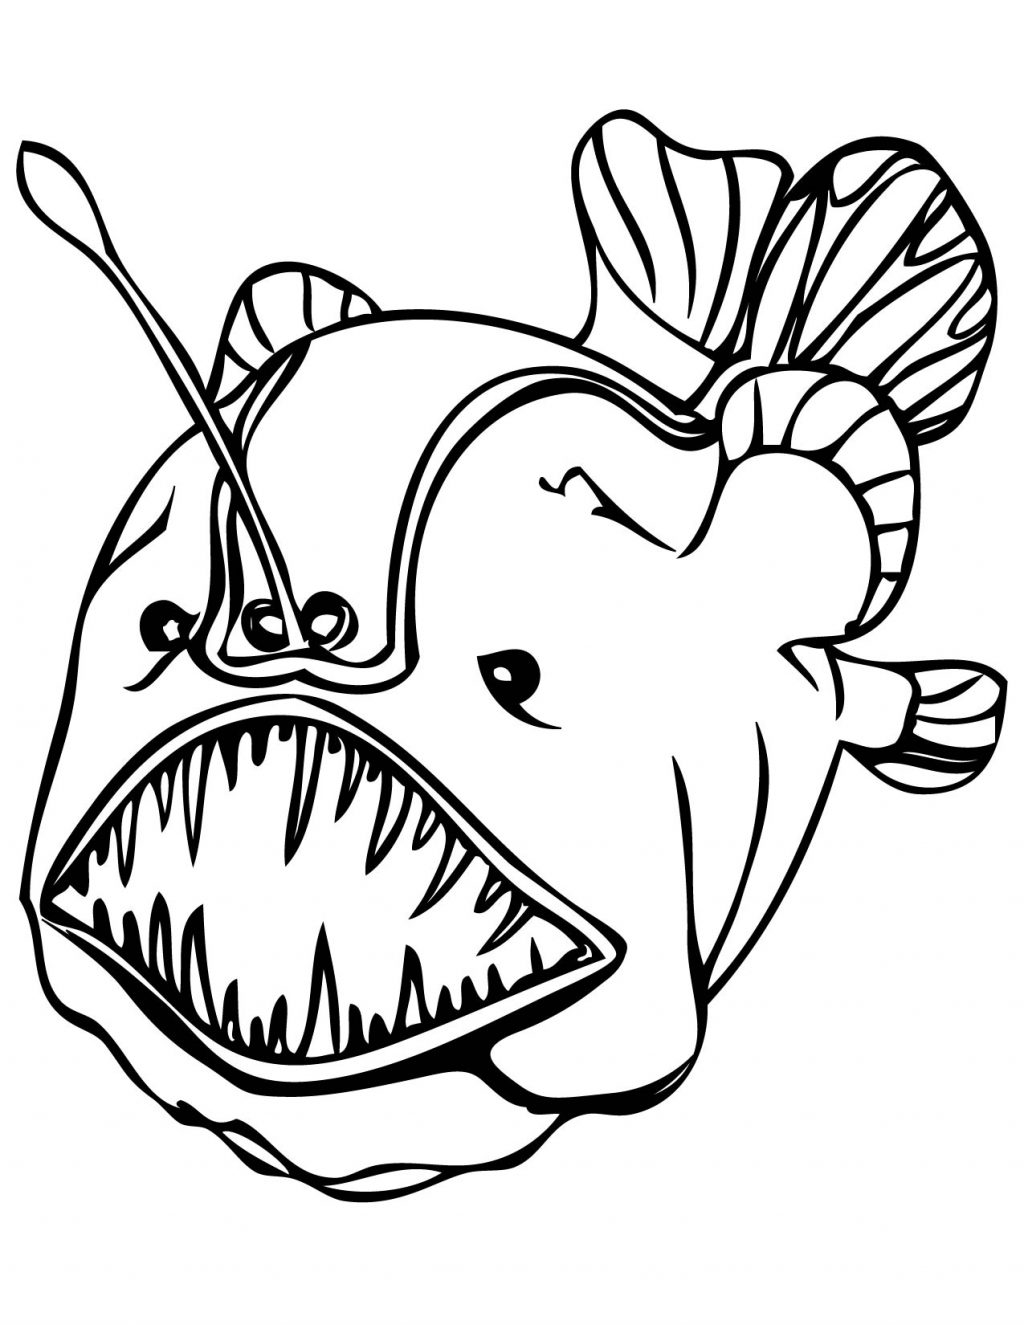 images of fish for colouring free cute fish outline download free clip art free clip of images for colouring fish